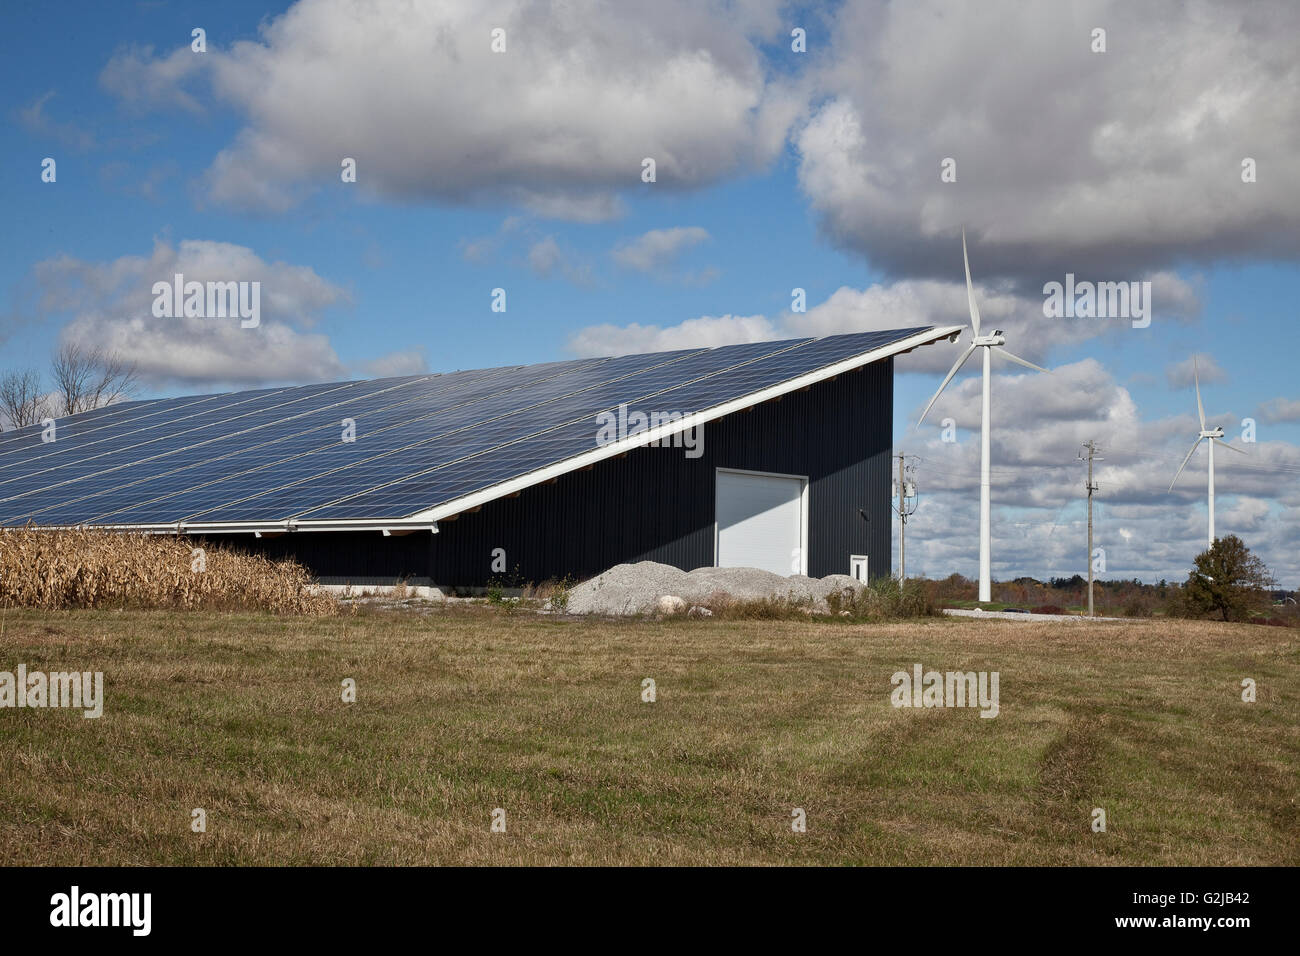 solar panels on highways storage building in ontario near lake erie ontario canada